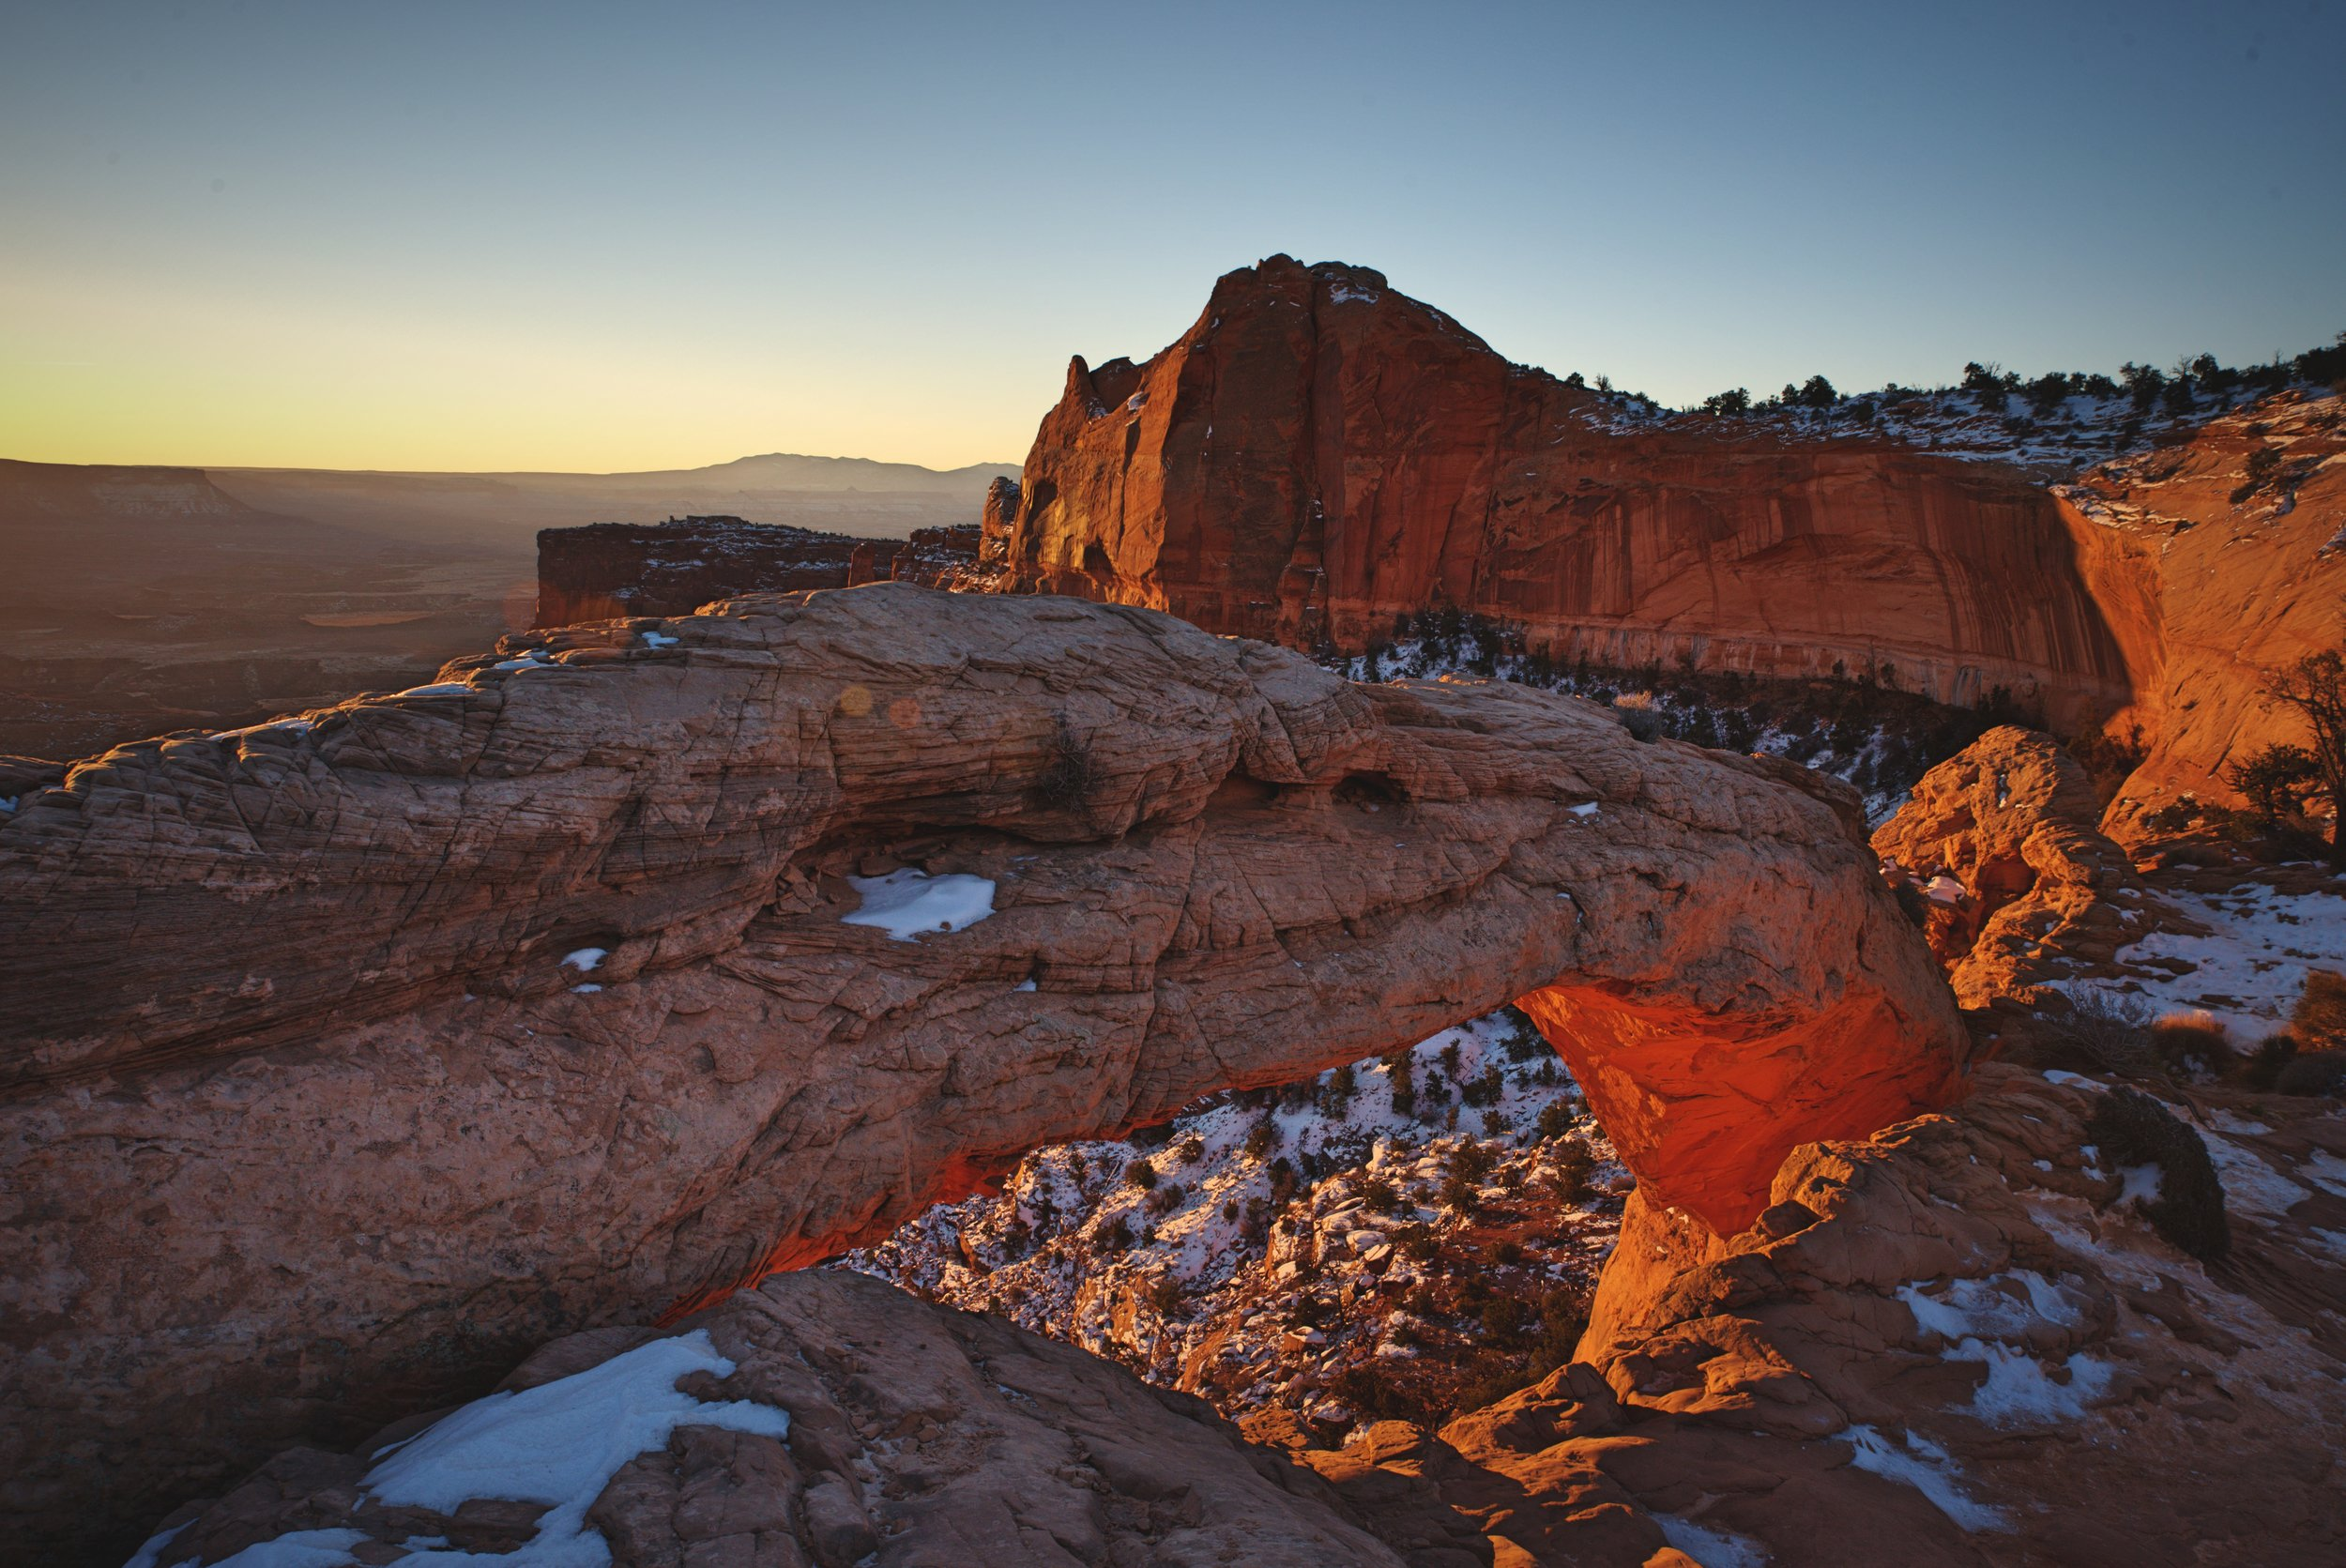 If you're planning to photograph Mesa Arch, walk around and try a few different compositions.